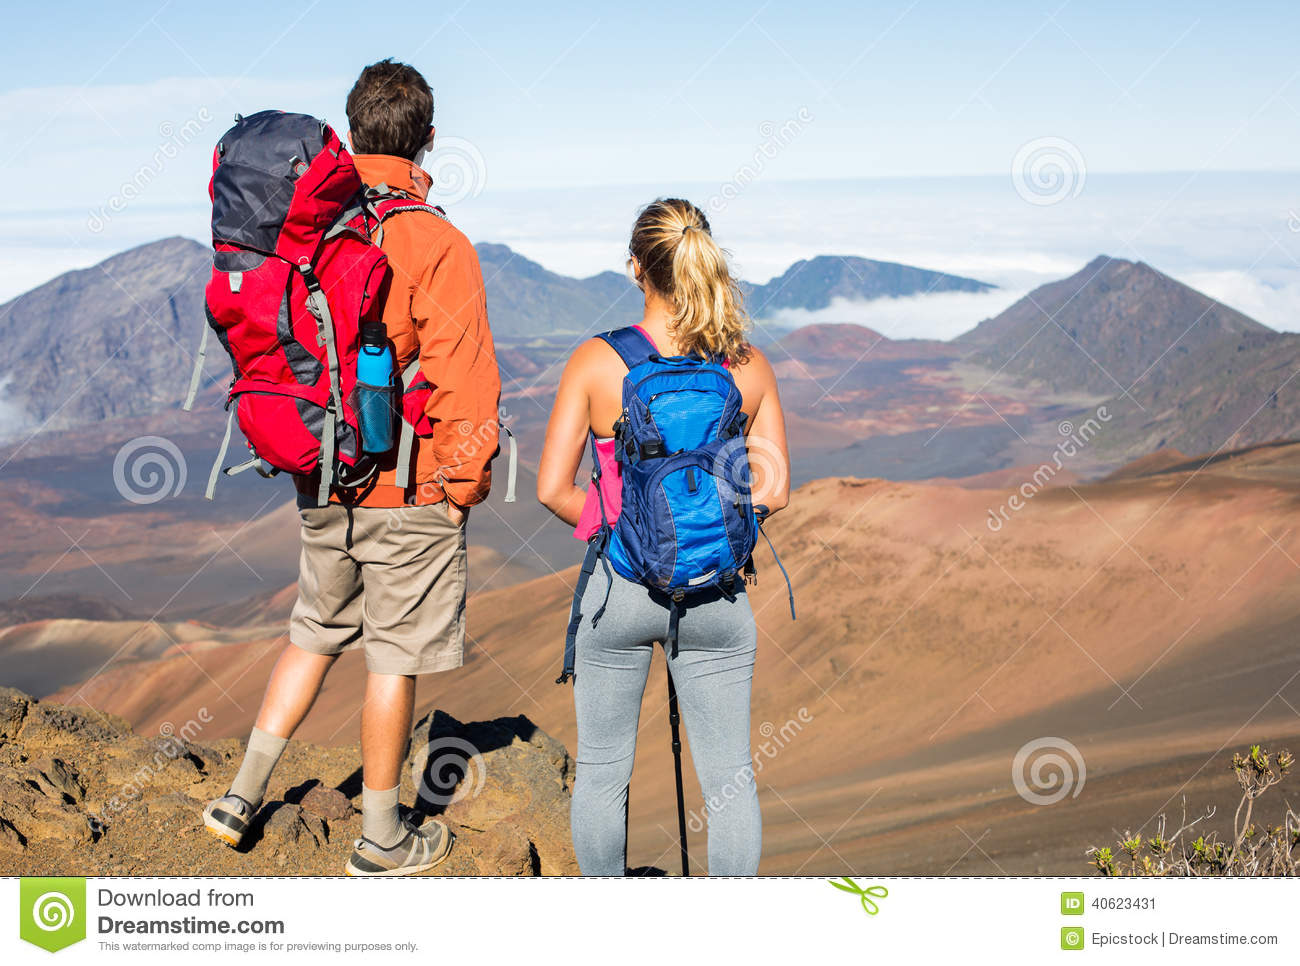 2e16b469dffe96 Man and women hiking on beautiful mountain trail. Trekking and backpacking  in the mountains. Healthy lifestyle outdoor adventure concept.